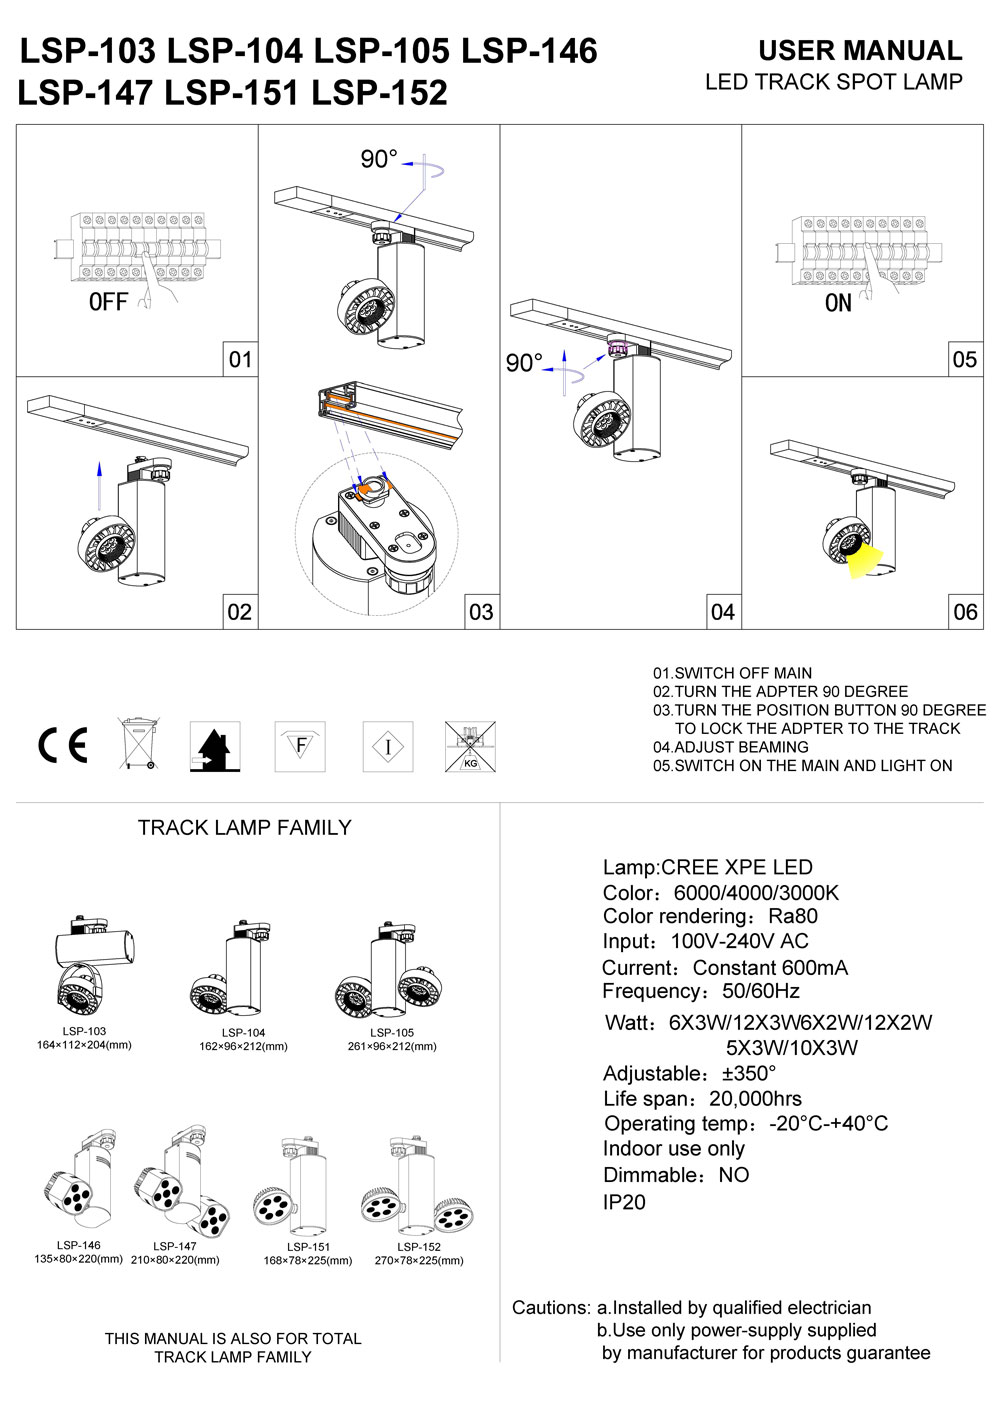 LSP-103-LSP-104-LSP-105-LSP LED track light installation guide